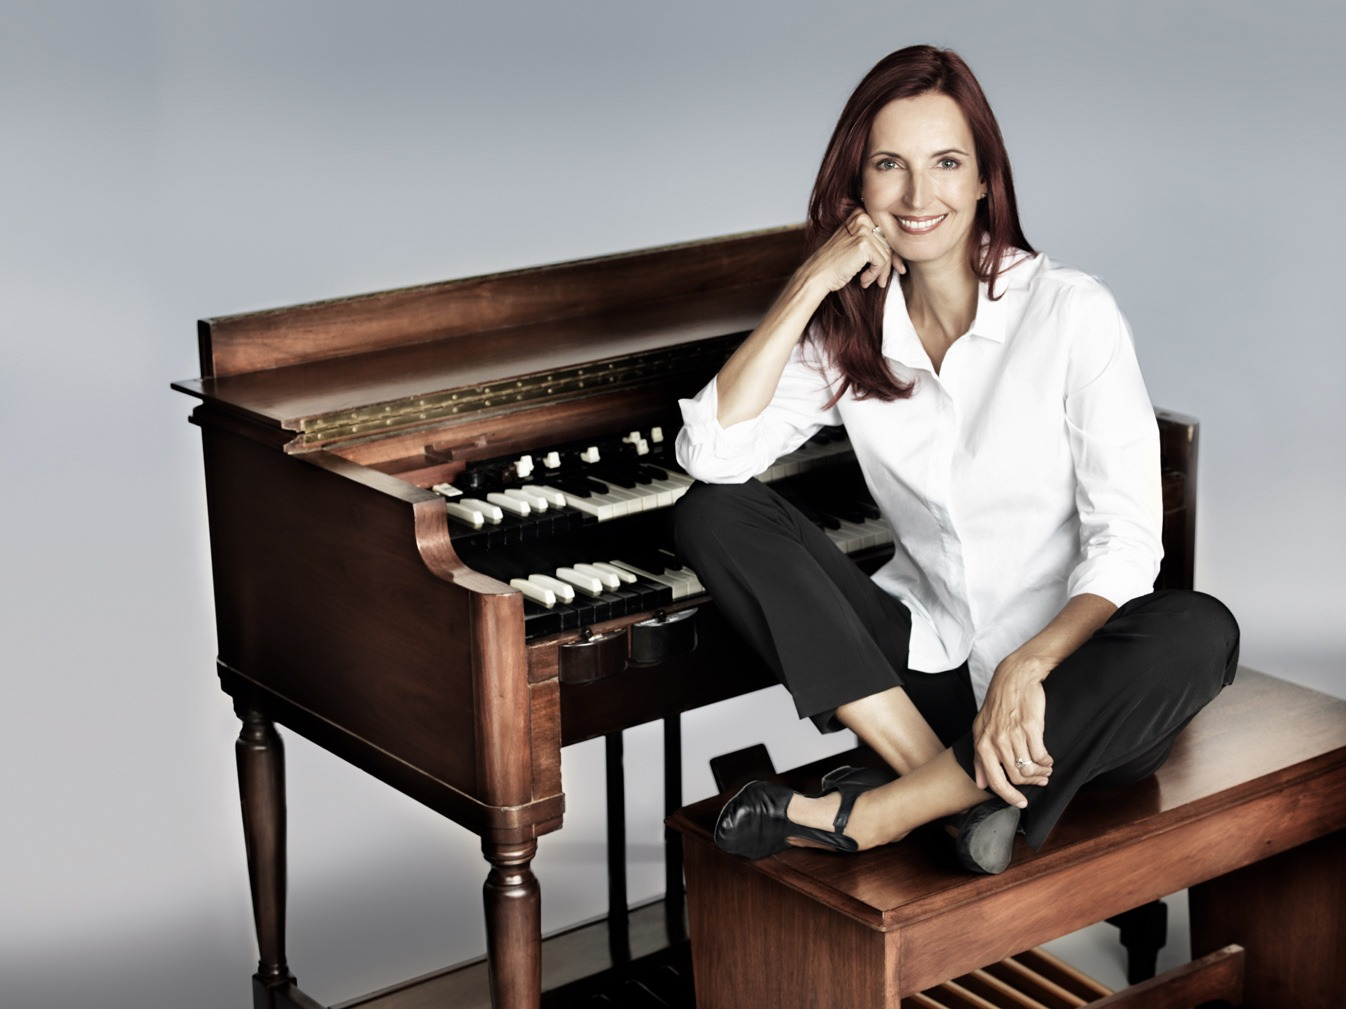 Barbara Dennerlein sitting on a piano